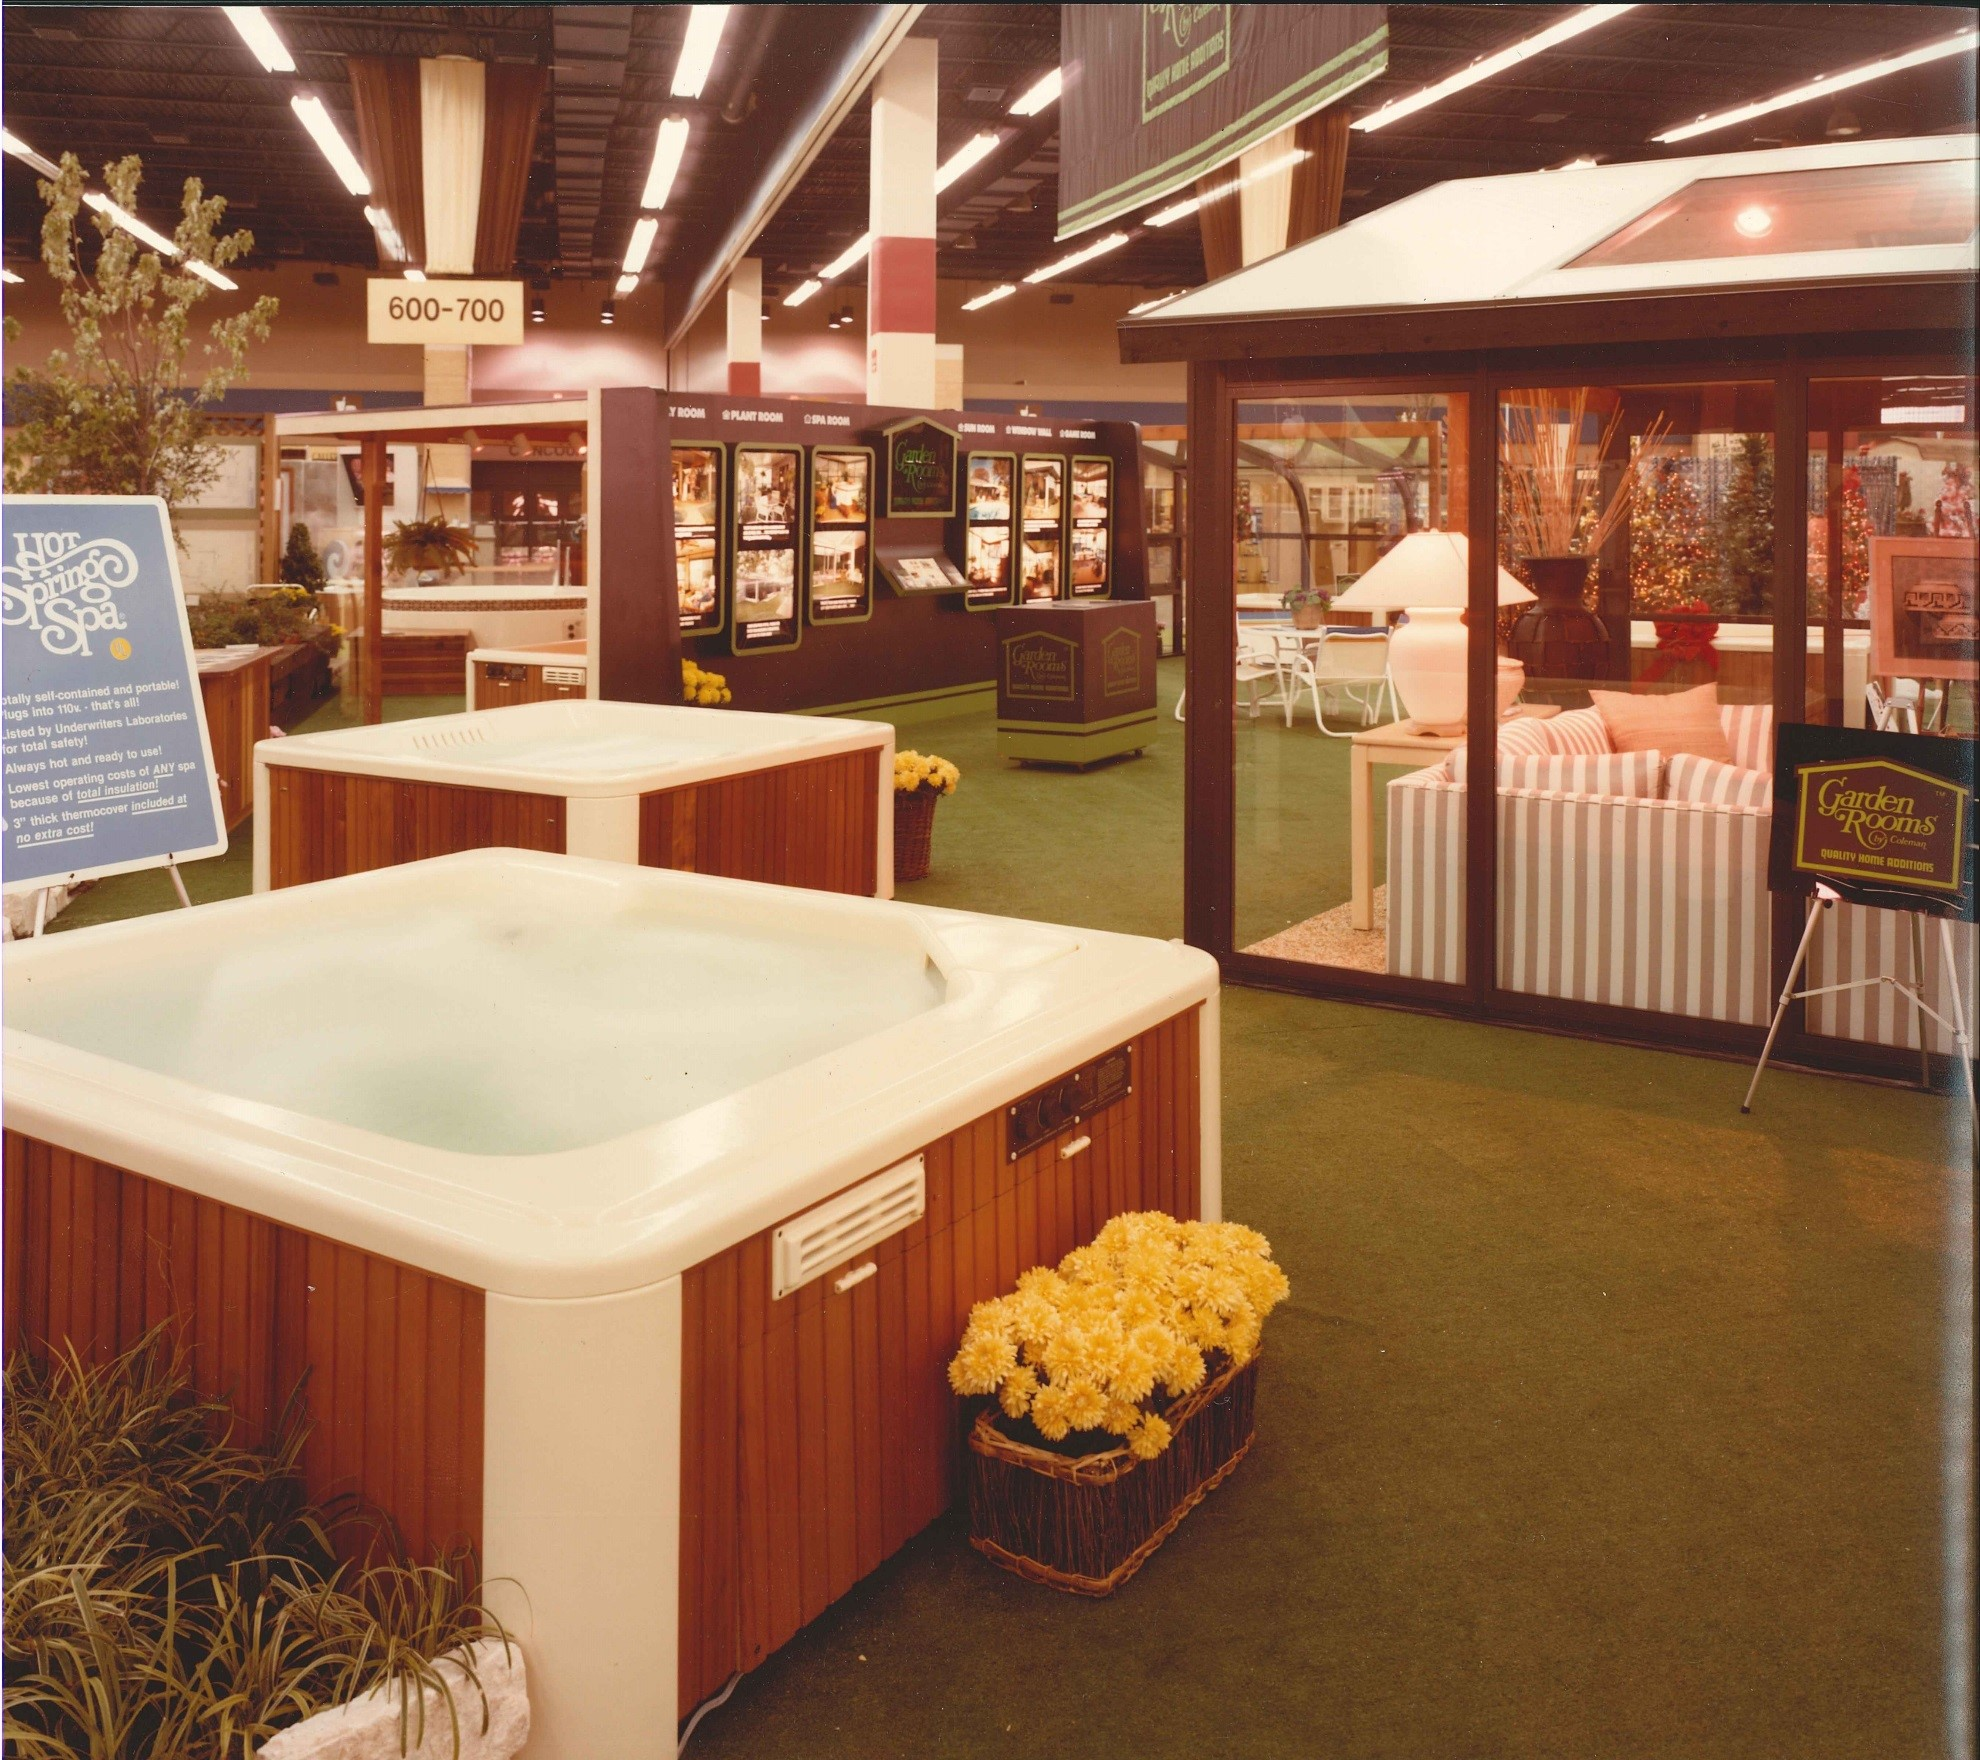 Hot Spring spas and hot tubs in the 1980s